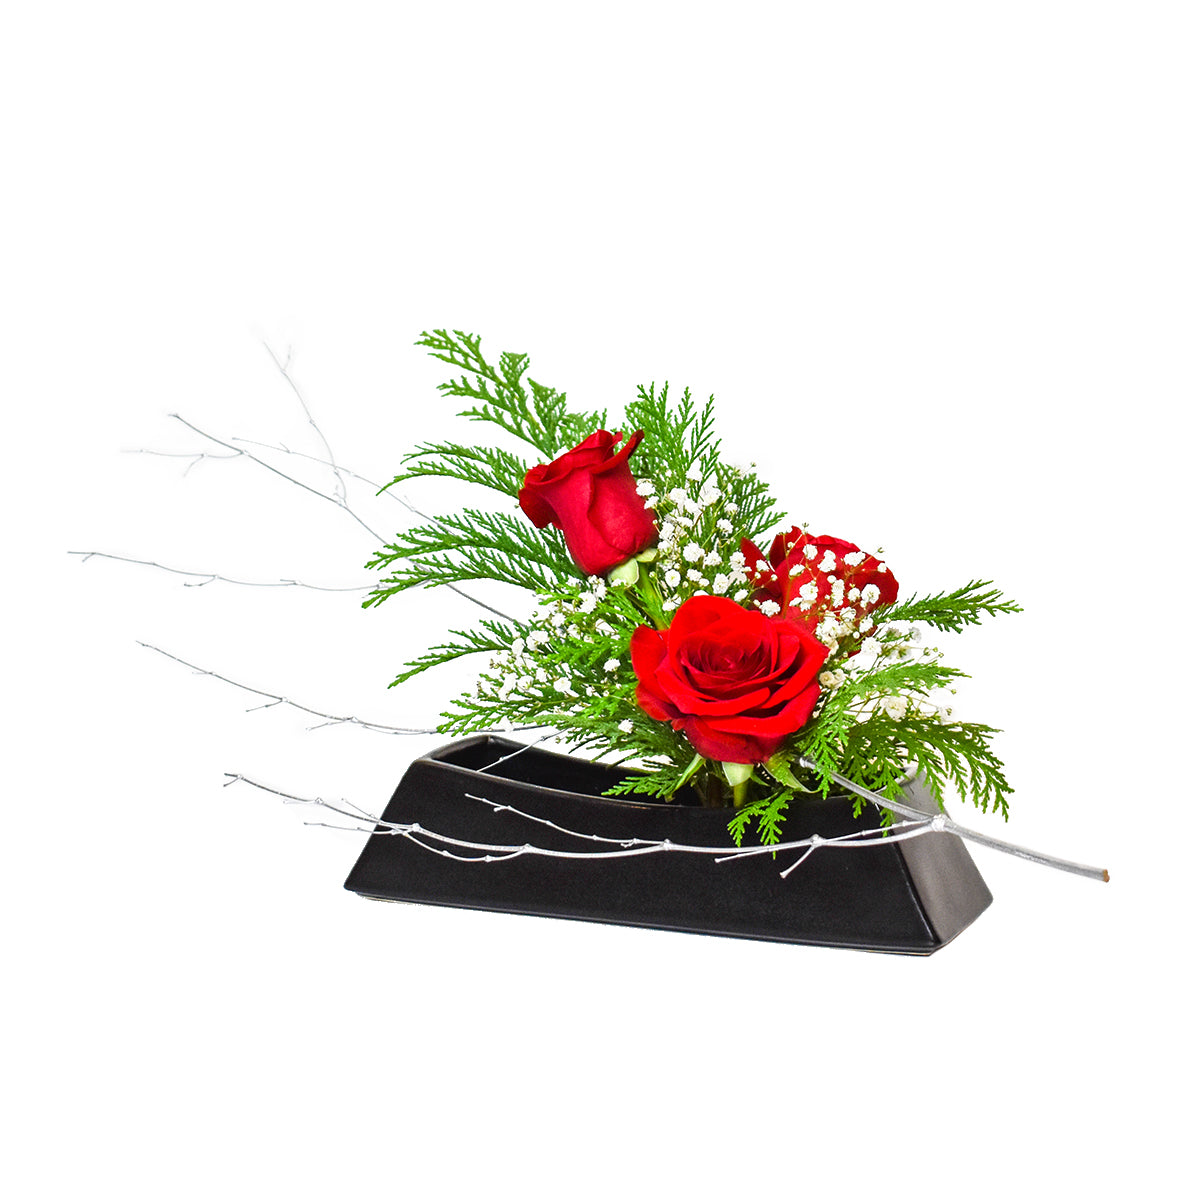 December Arrangement: Holiday Glitz